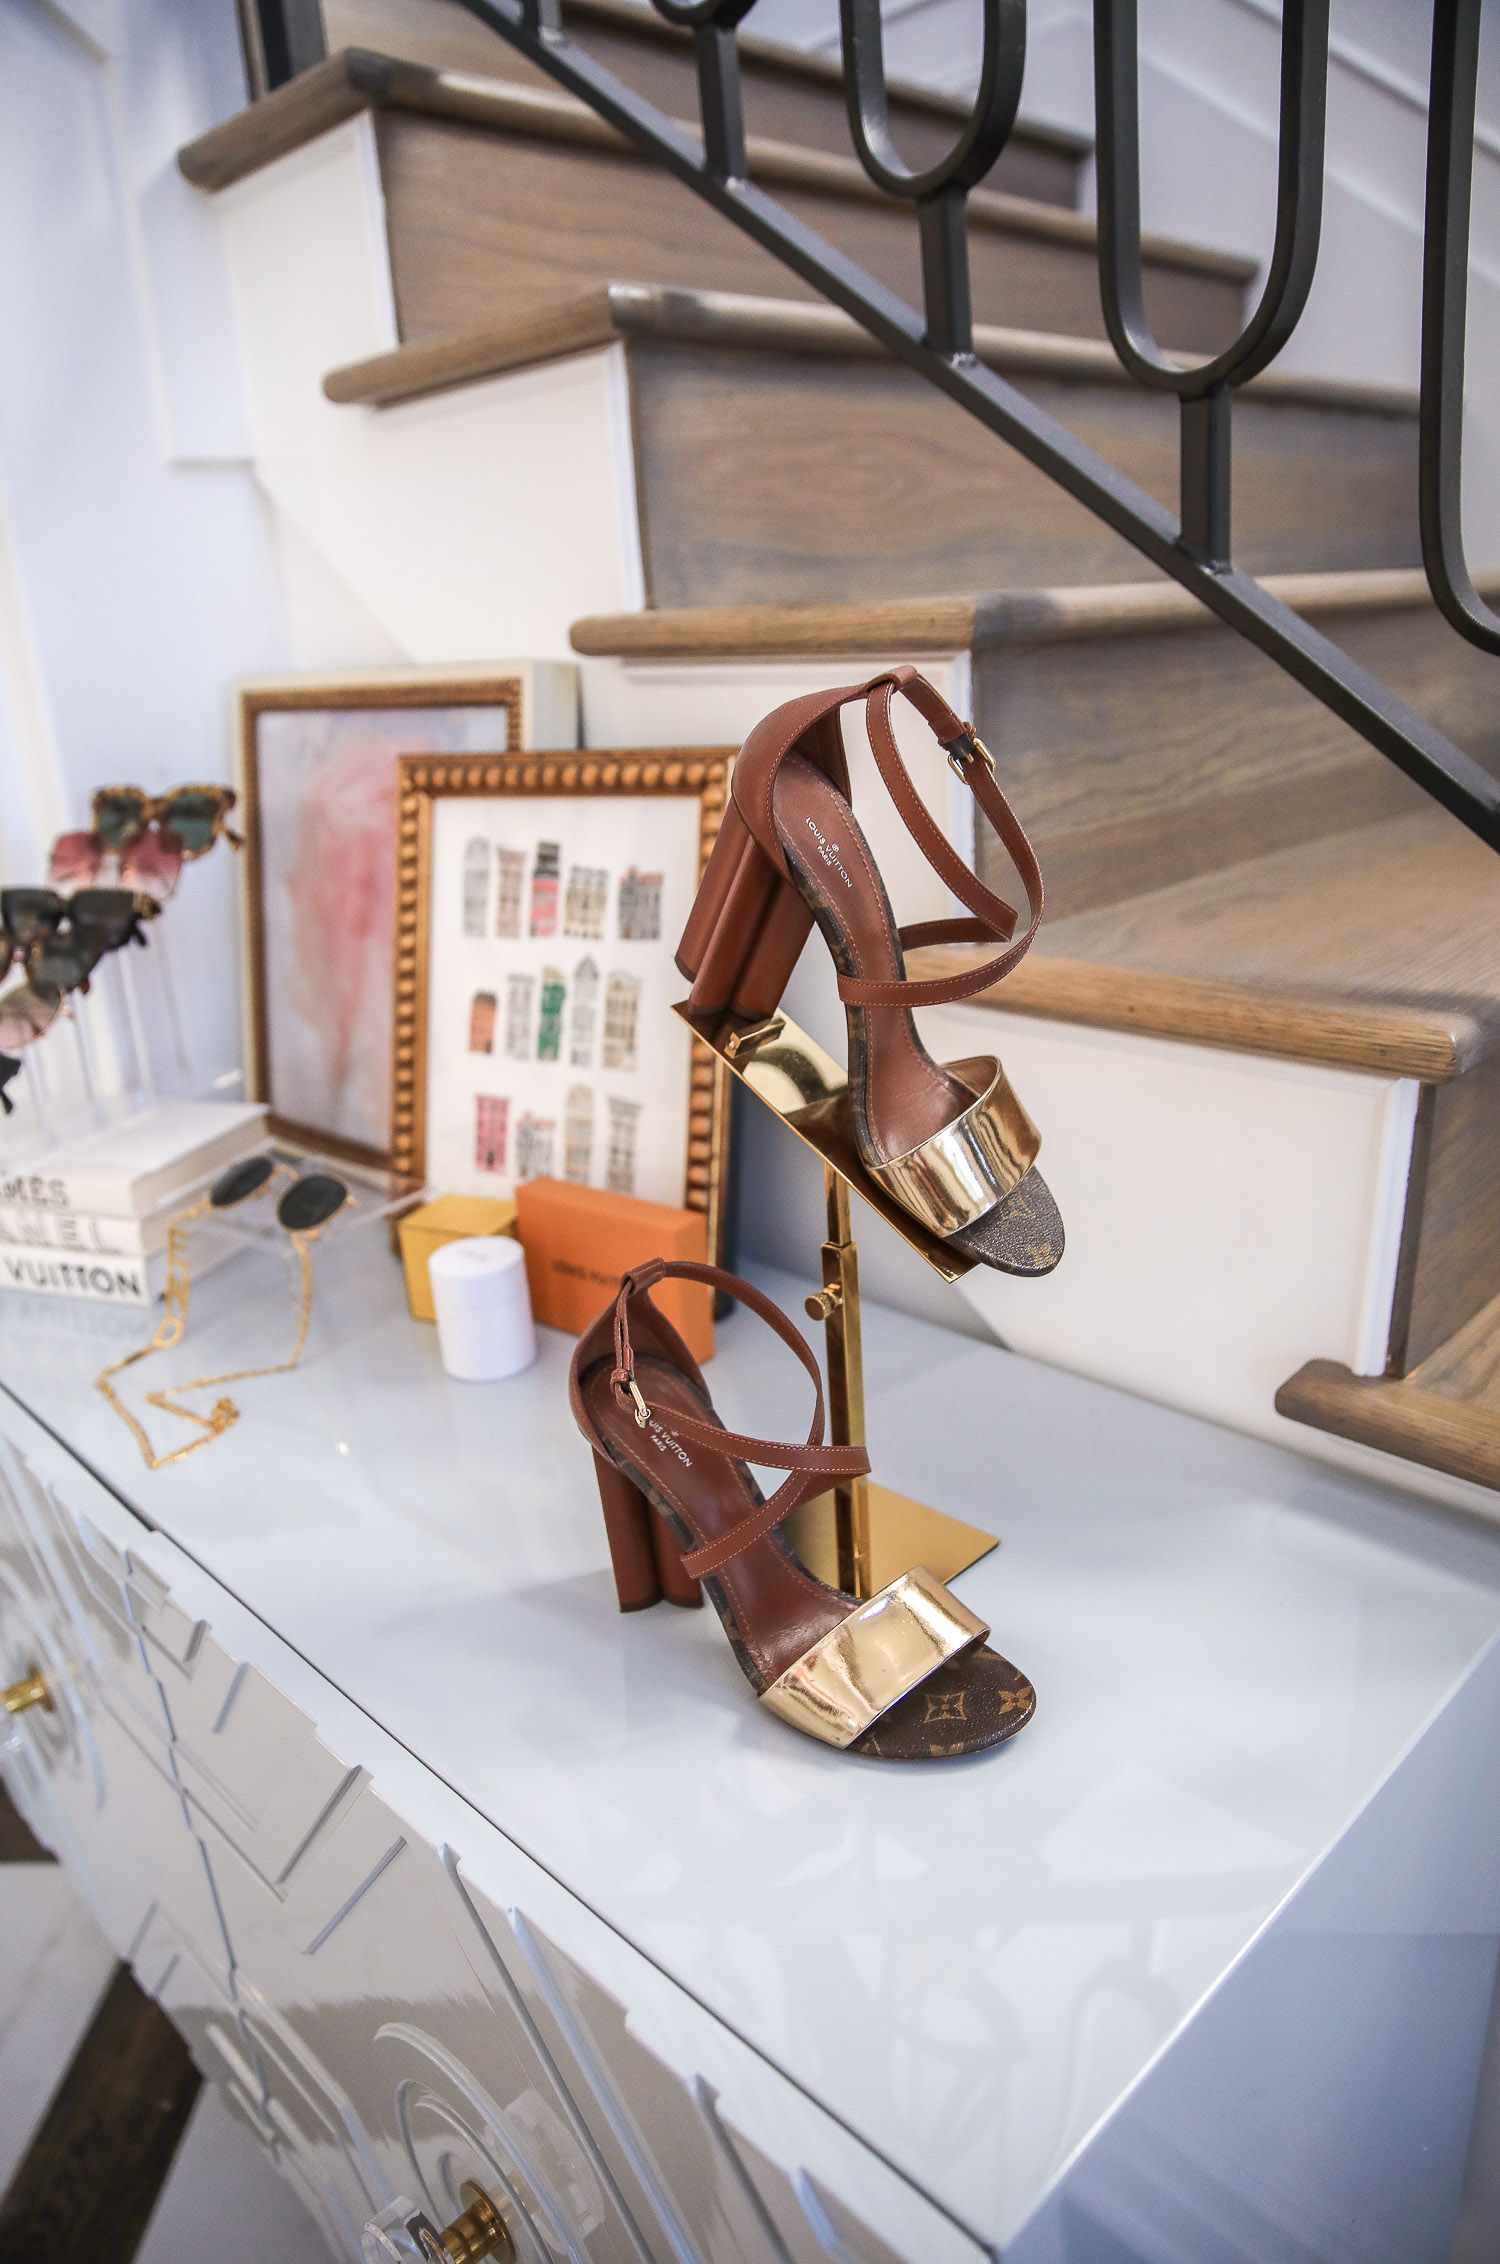 Top Picks by popular US life and style blog, The Sweetest Thing: image of Louis Vuitton sandals on a gold shoe stand.